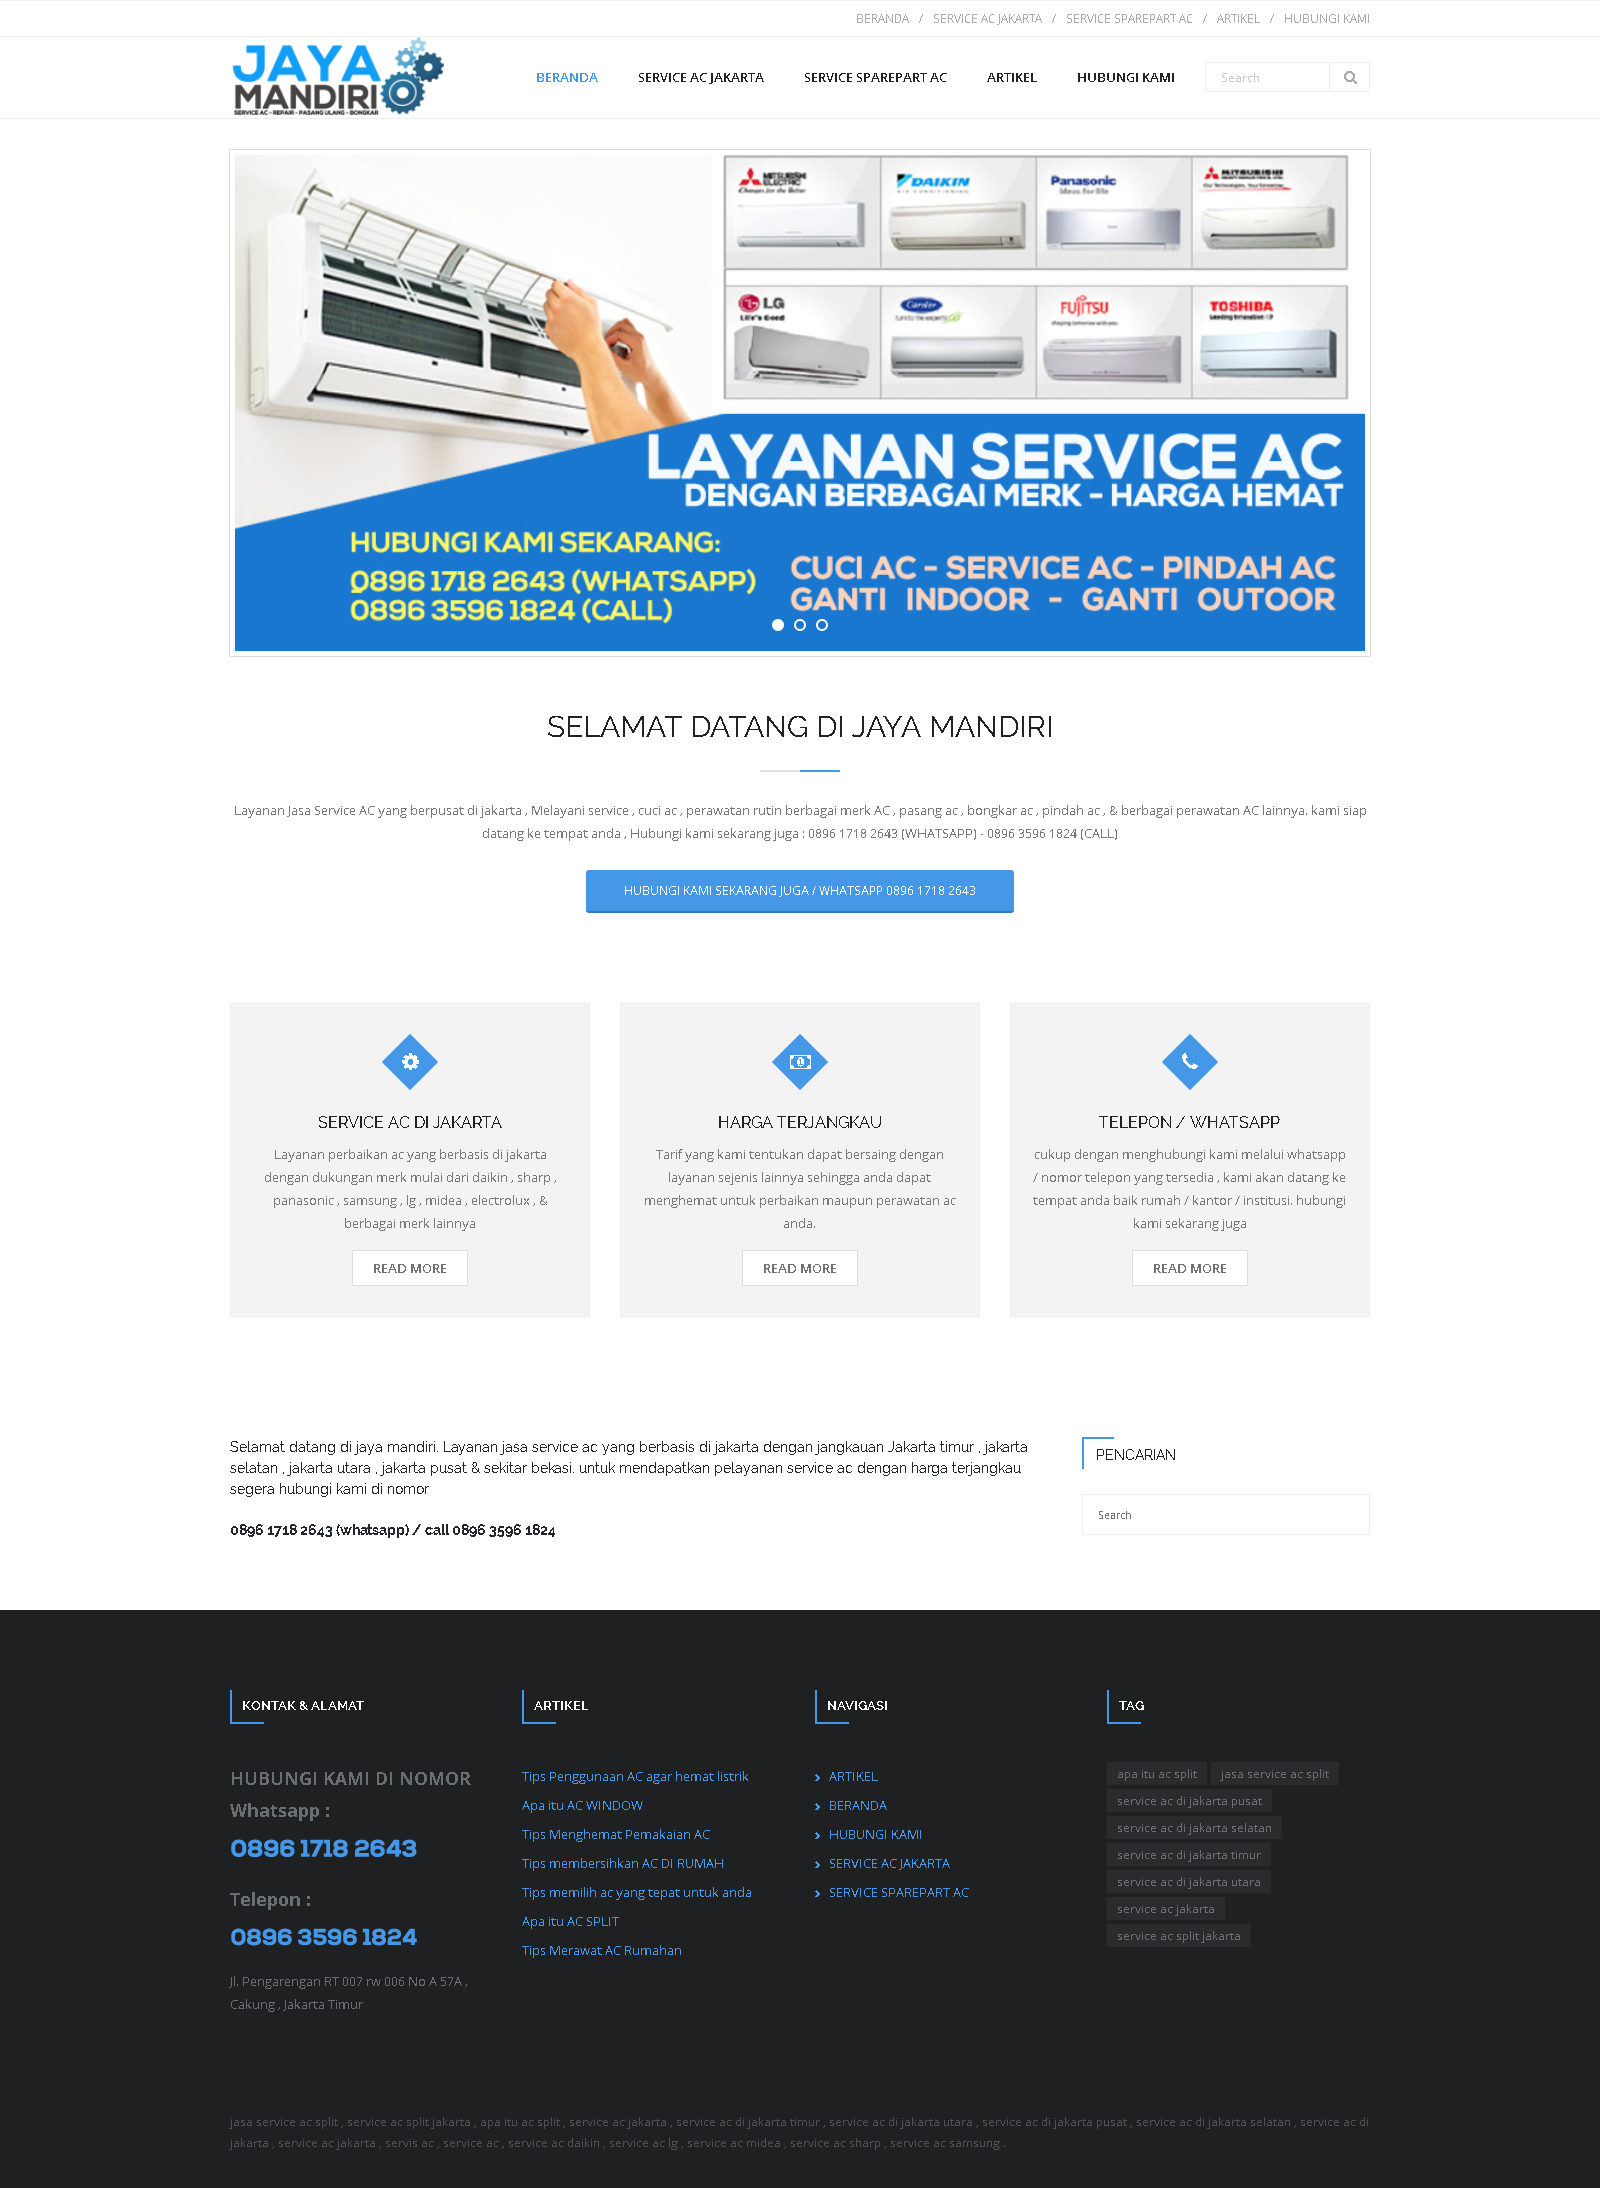 jasa website service ac